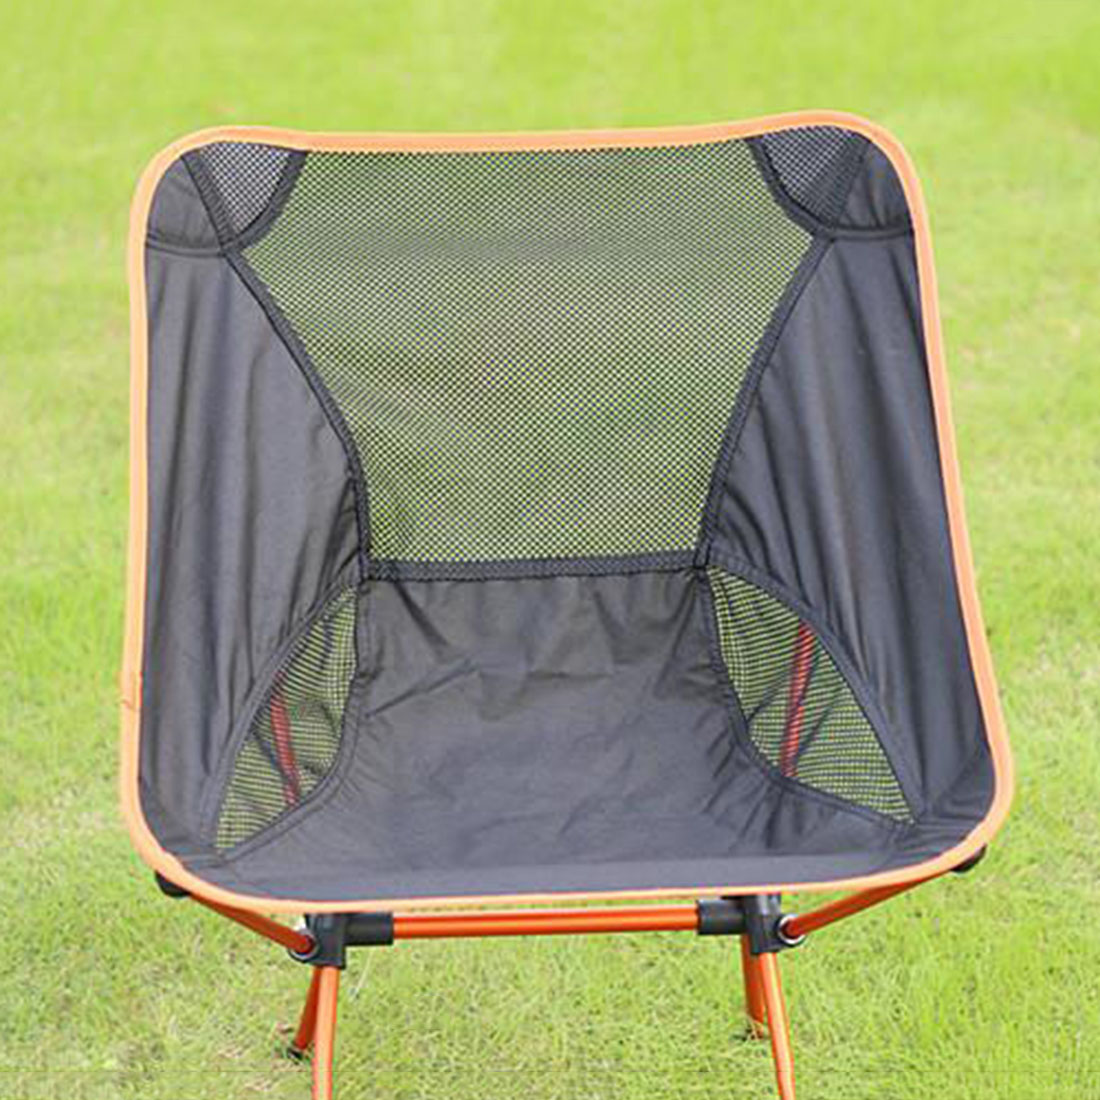 Lightweight camping chairs - 2016 Mesh Fishing Chair Portable Folding Lightweight Fishing Chair Foldable Camping Chair Beach Picnic Garden Chairs